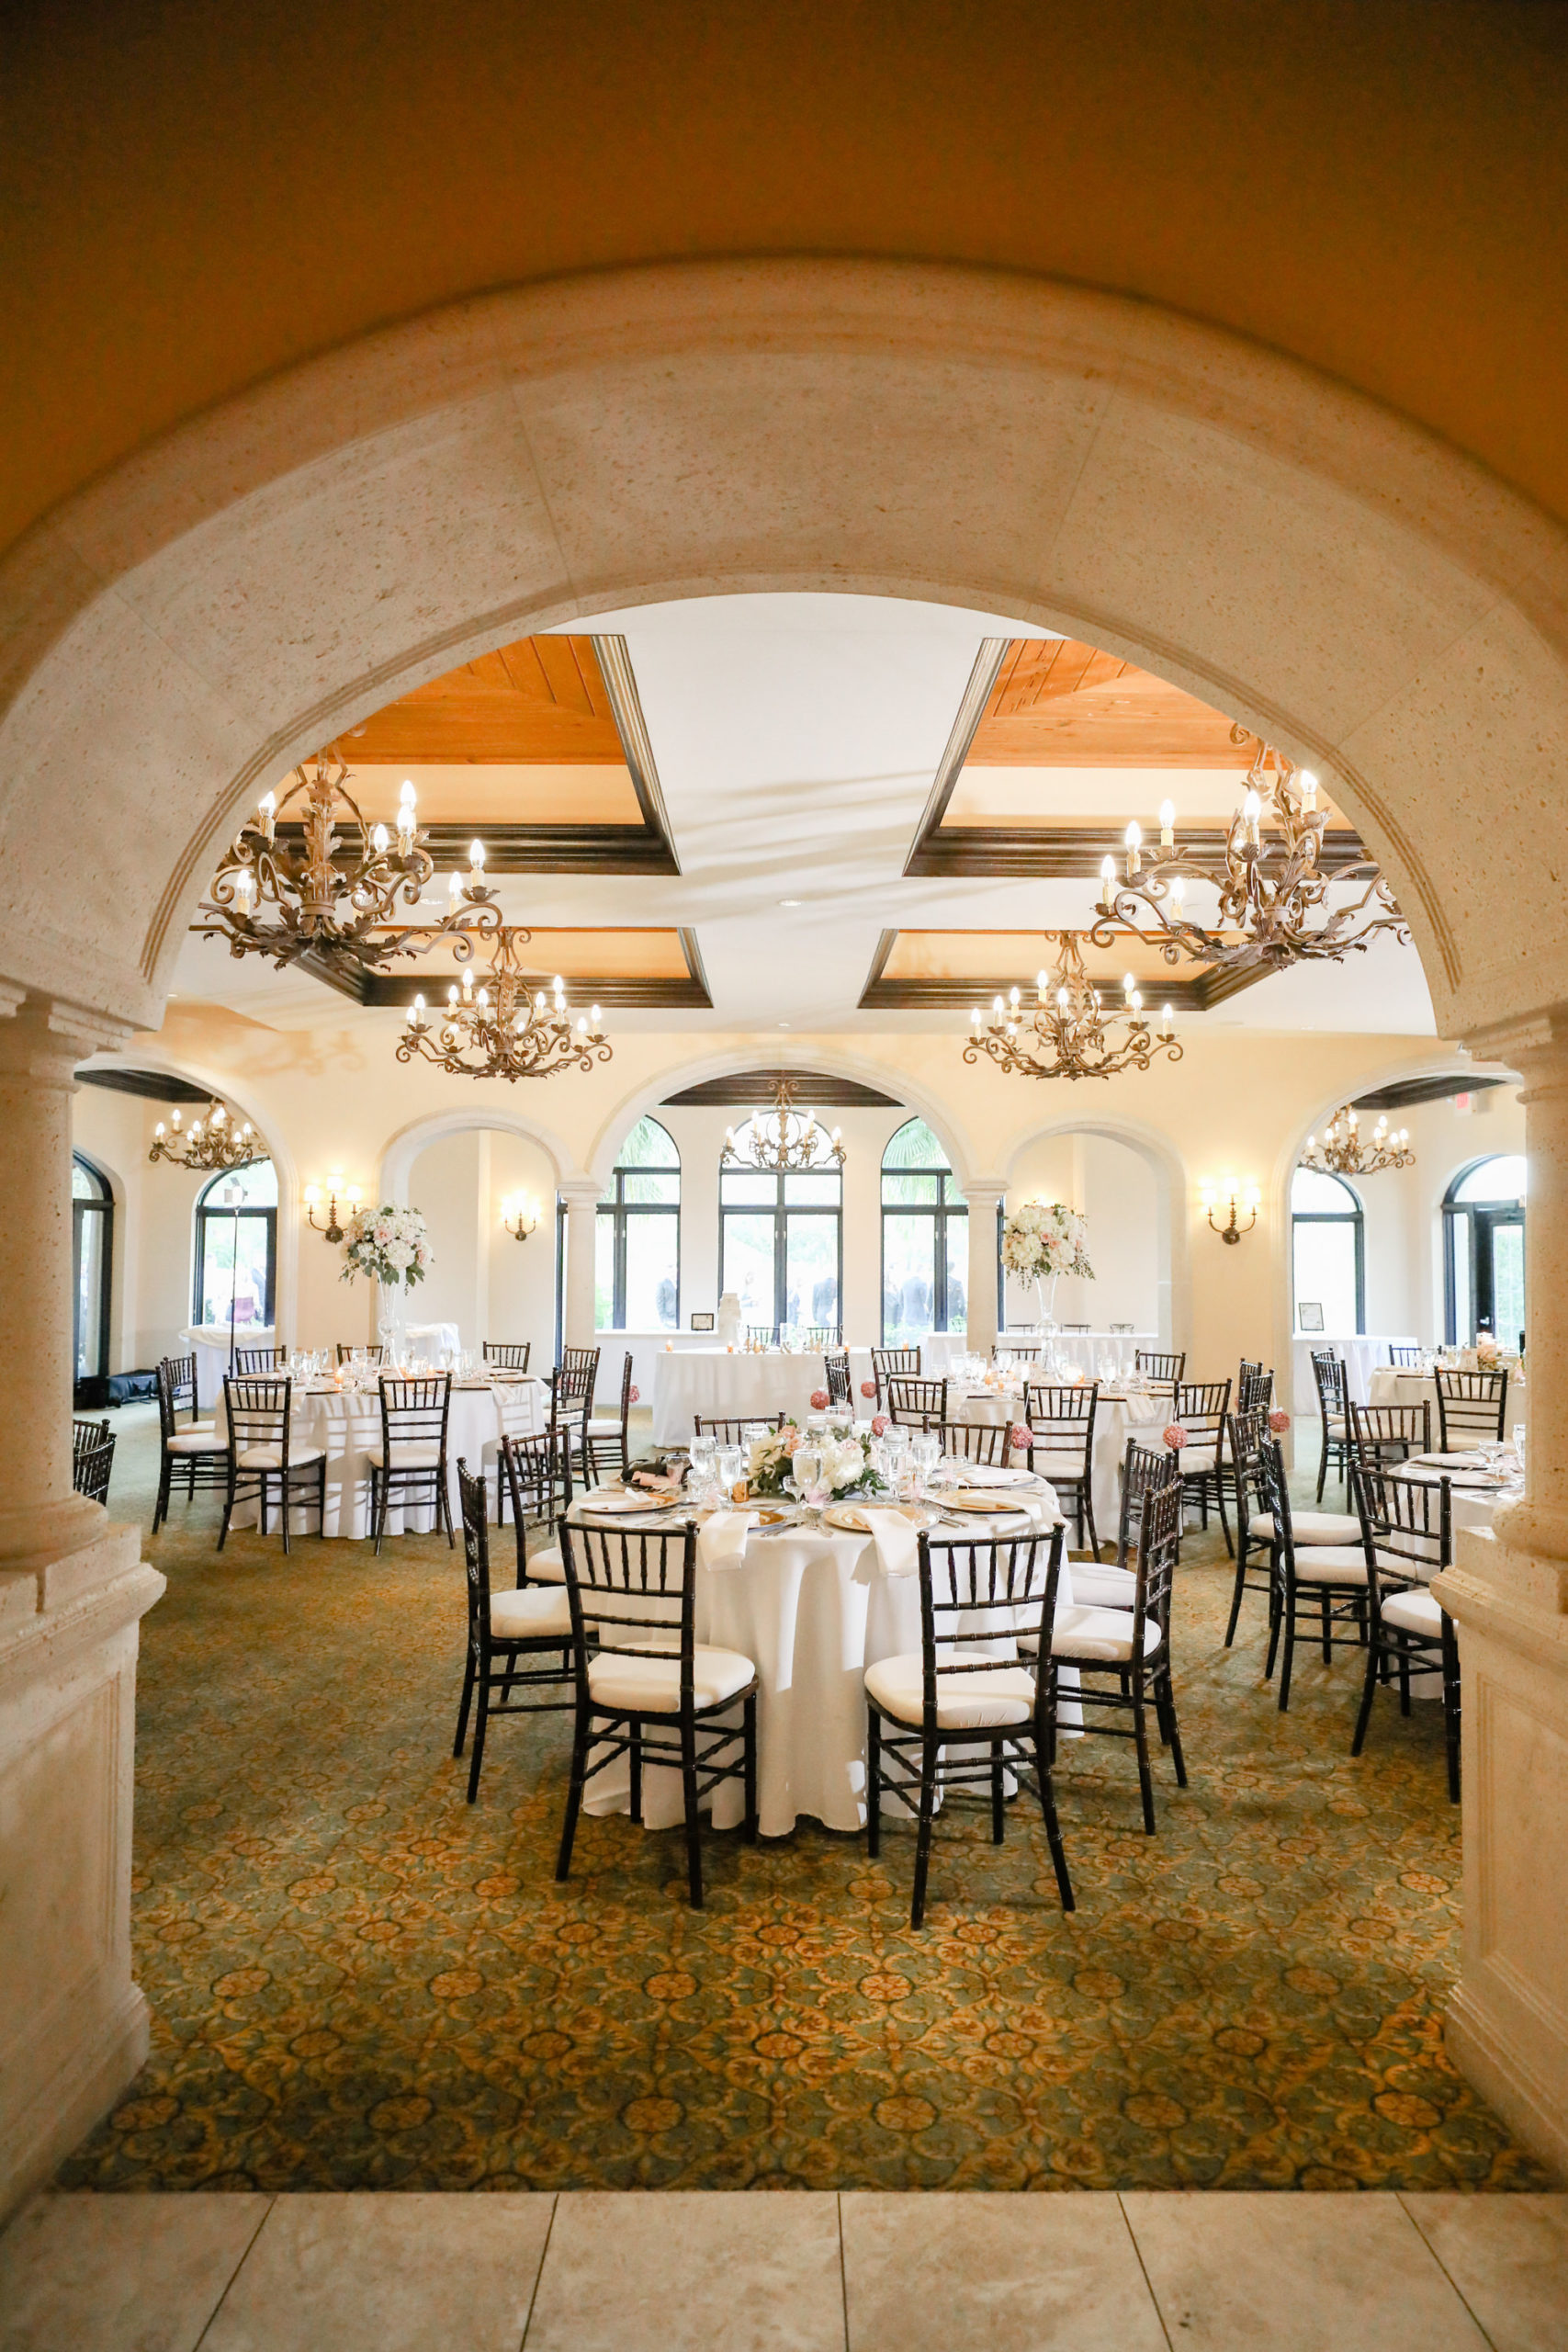 Tampa Wedding Venue Avila Golf & Country Club | Indoor Ballroom Reception with Black Chiavari Chairs and Chandeliers